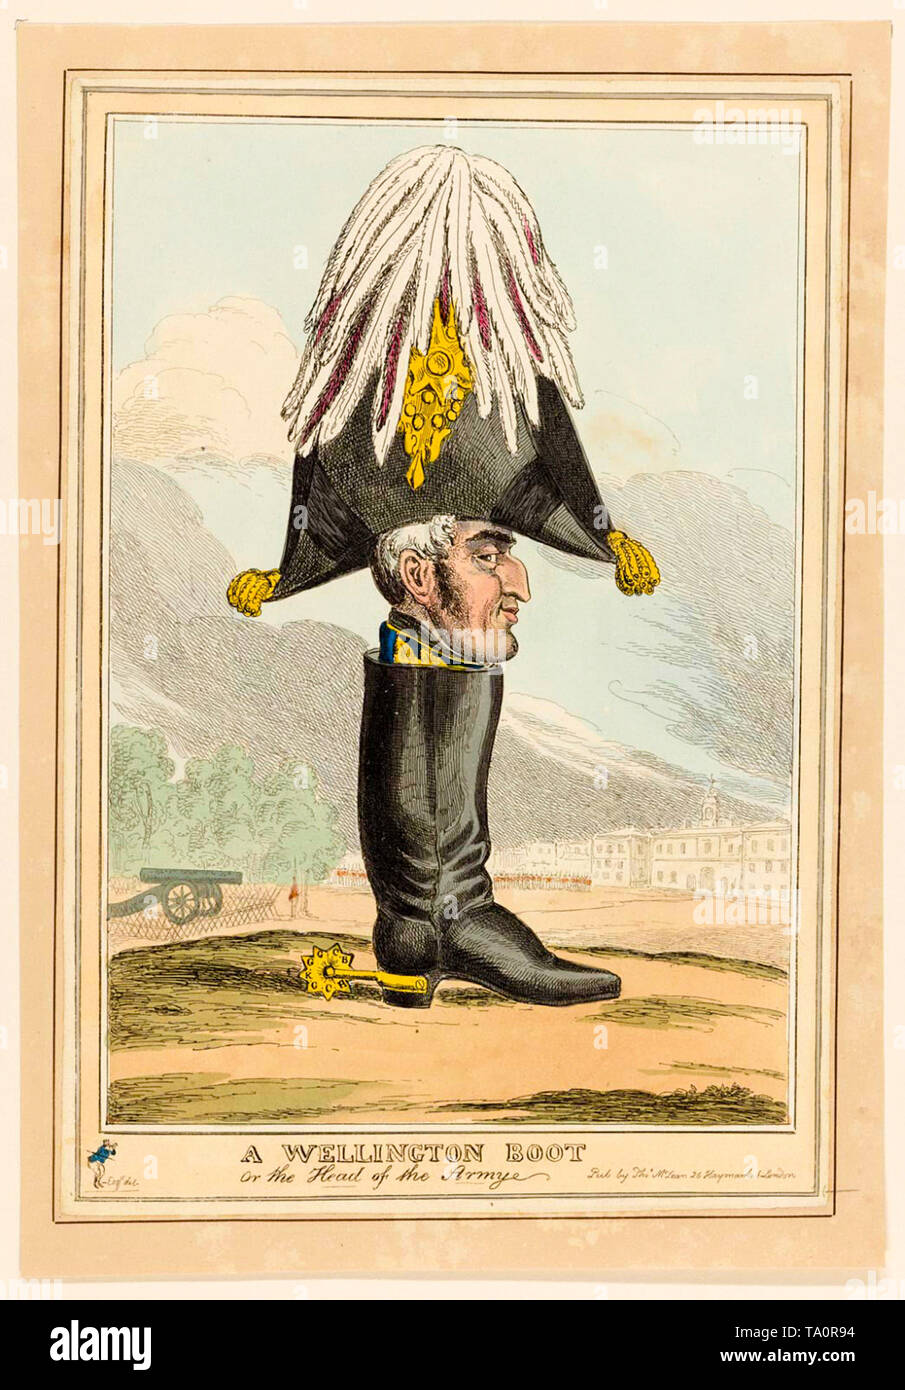 A Wellington Boot, or the Head of the Army, British political cartoon lampooning the Duke of Wellington, William Heath, late 18th Century - Stock Image